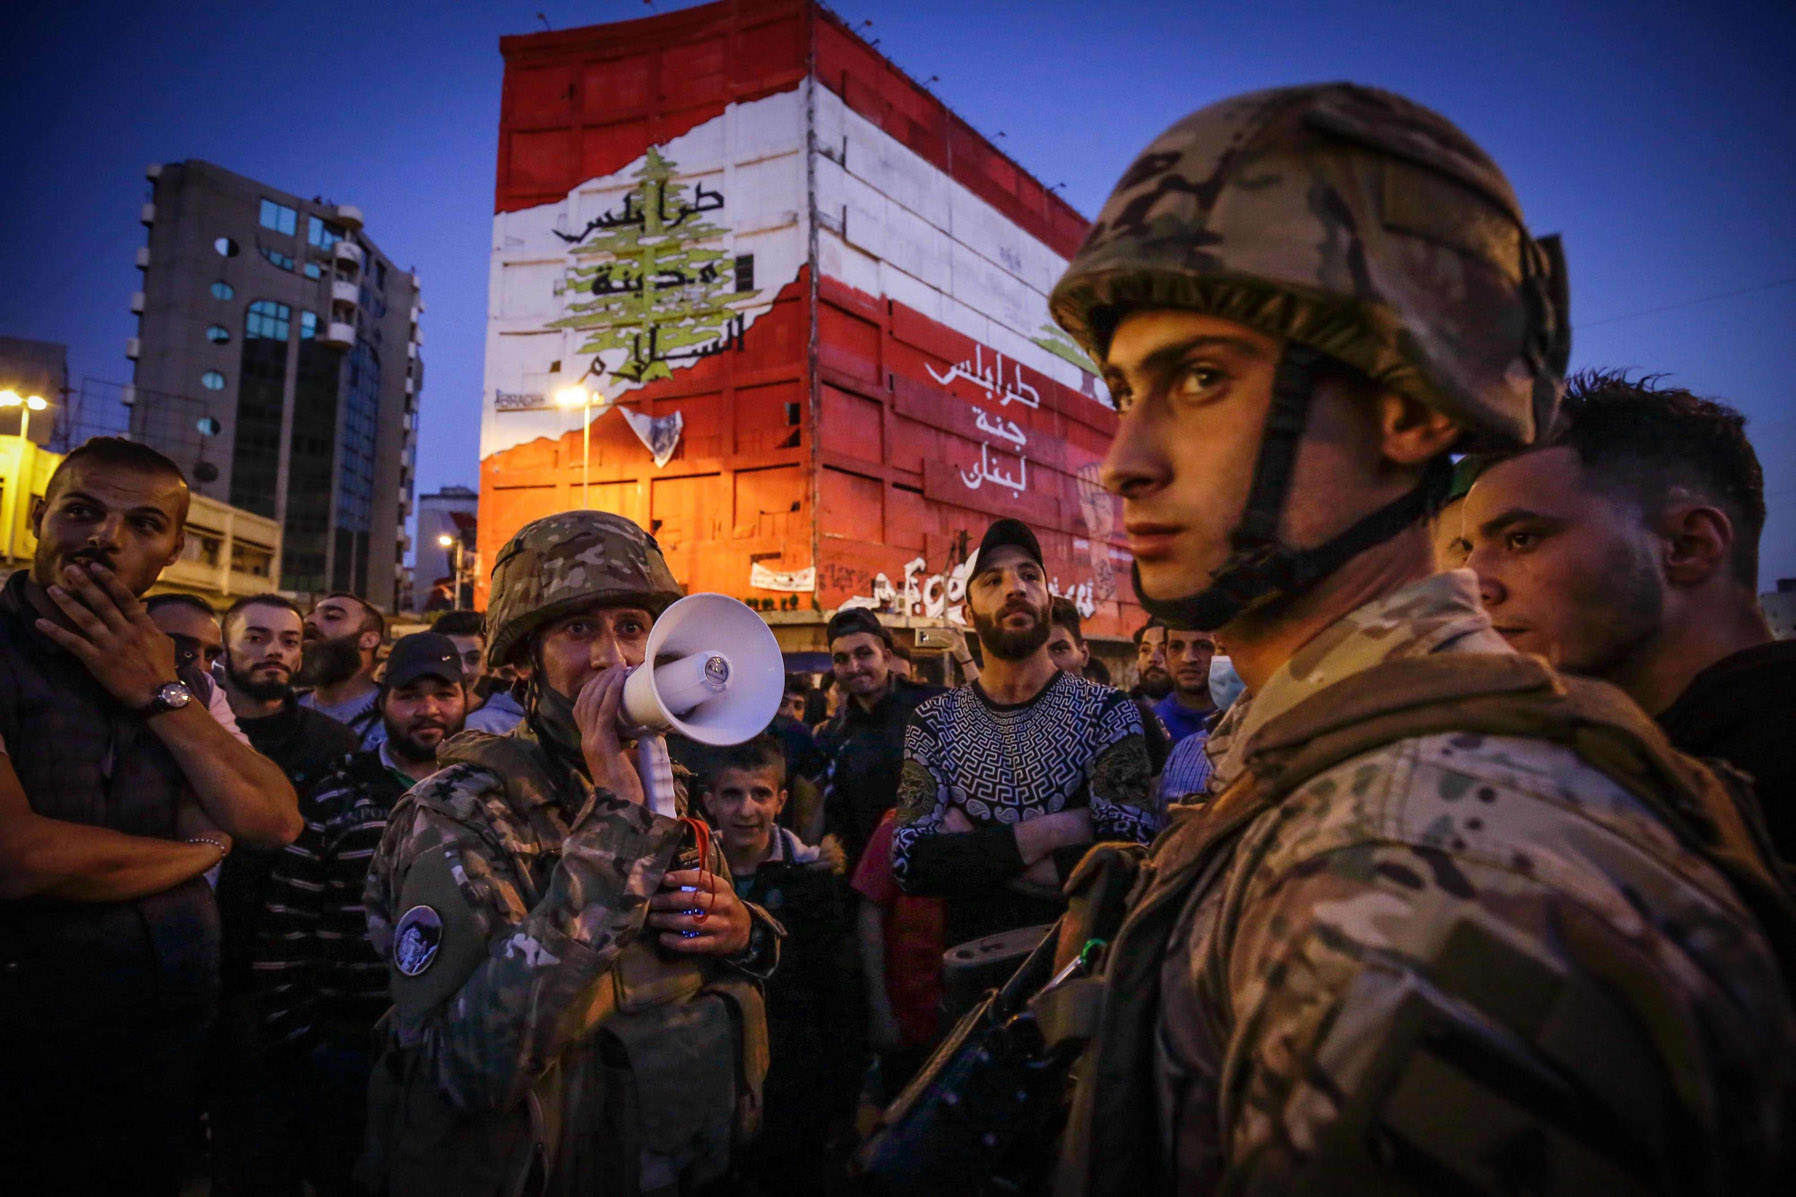 Lebanese soldiers keep watch as several hundred people protest in the northern city of Tripoli on April 17, despite the country's coronavirus lockdown. (AFP)